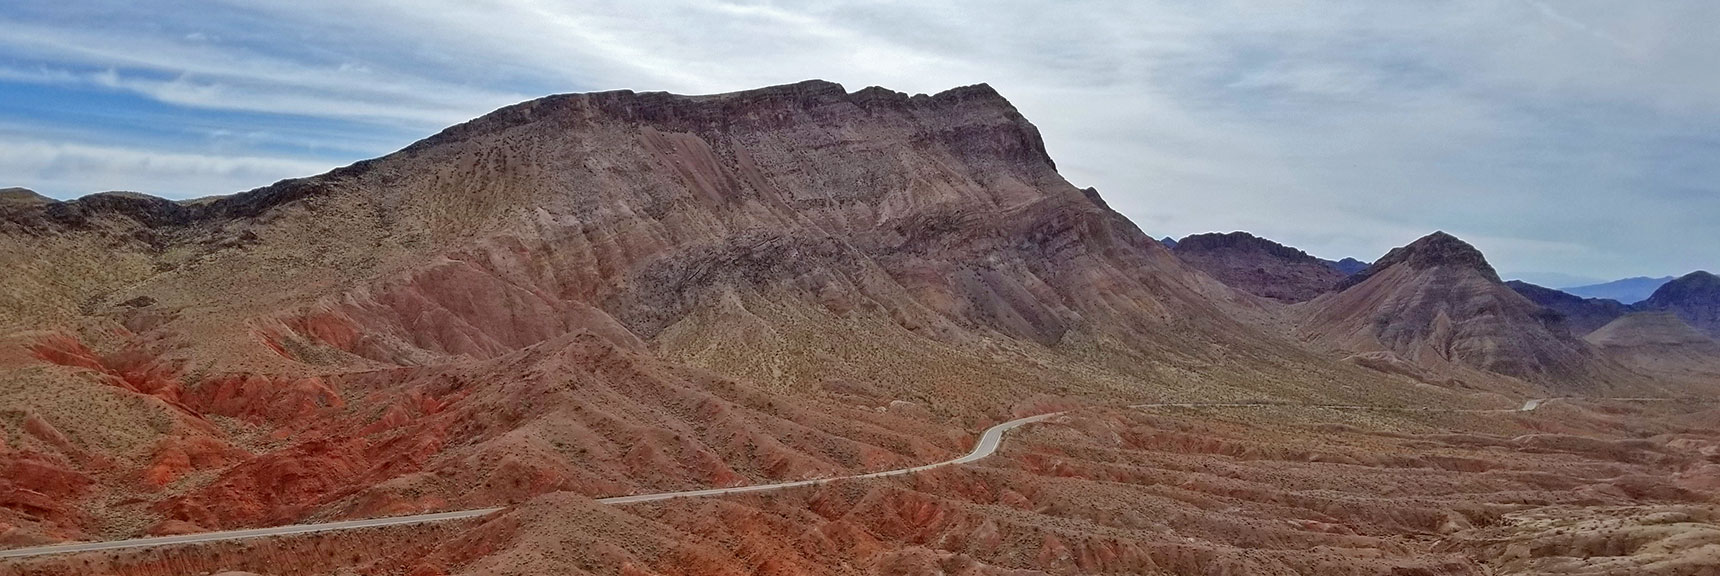 View of Muddy Mts from Northshore Summit Trail High Point at Mile 20.6 on Northshore Road in Lake Mead National Park